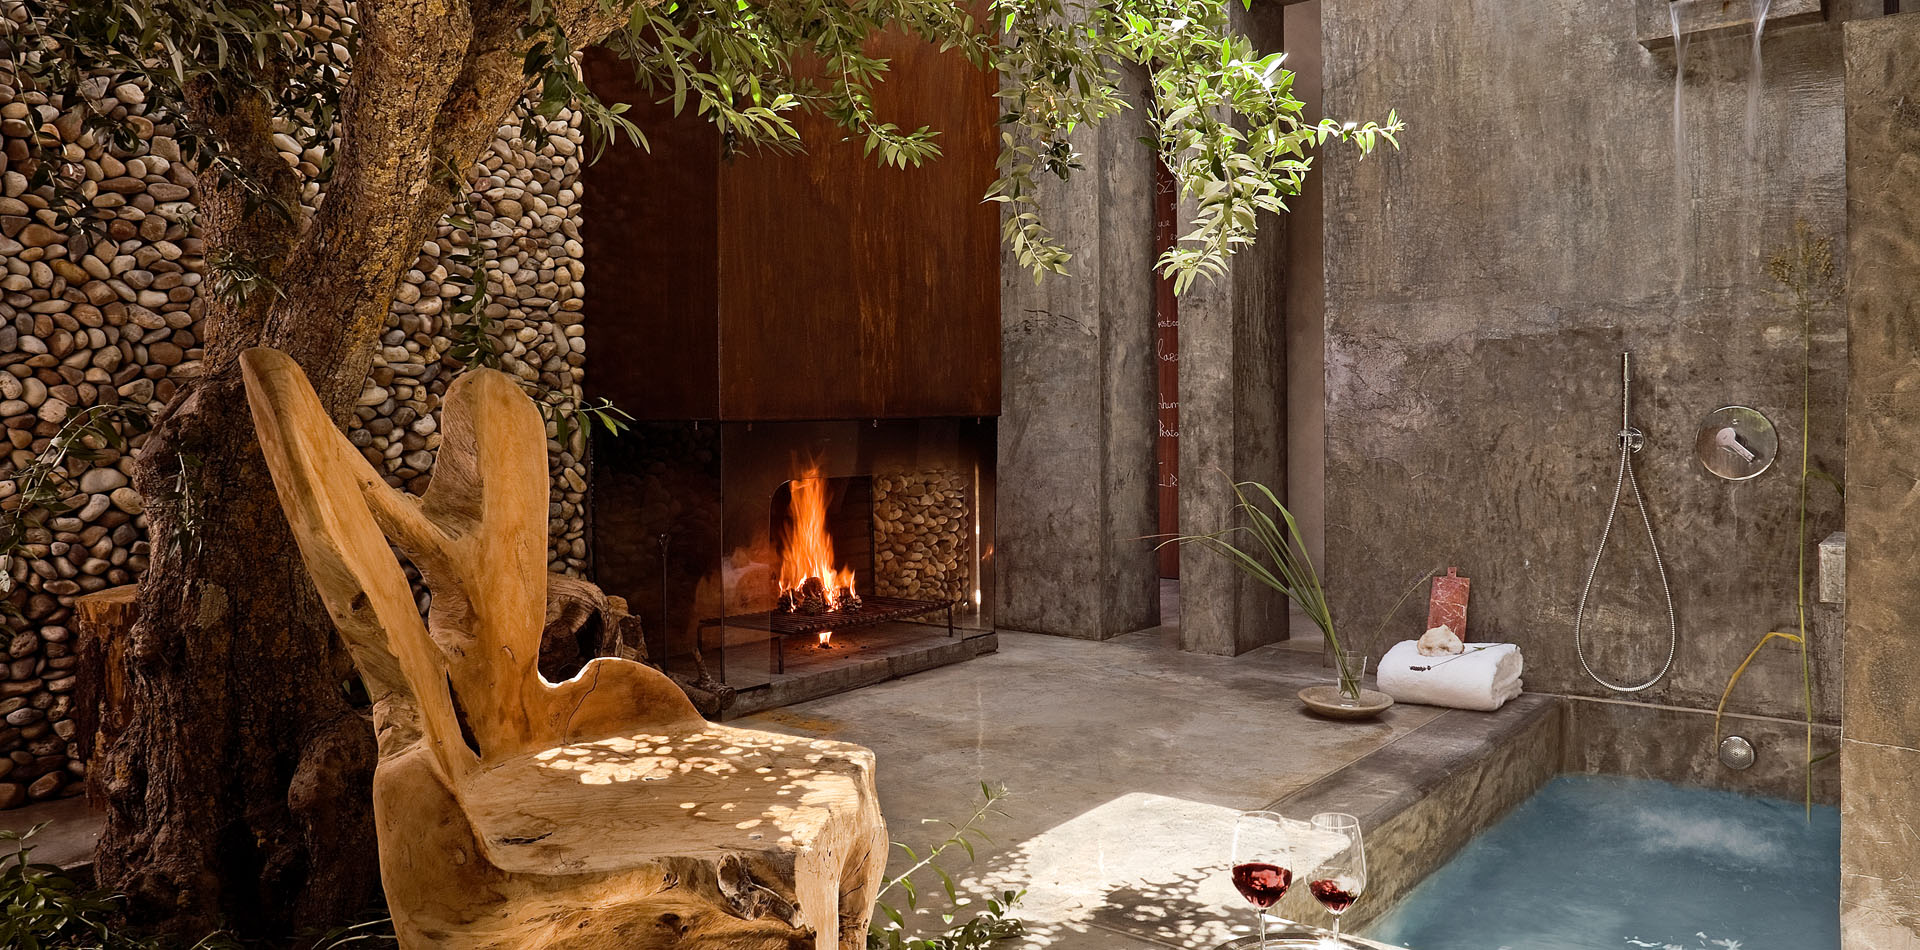 Luxushotel in Portugal Areias do Seixo Charm Hotel